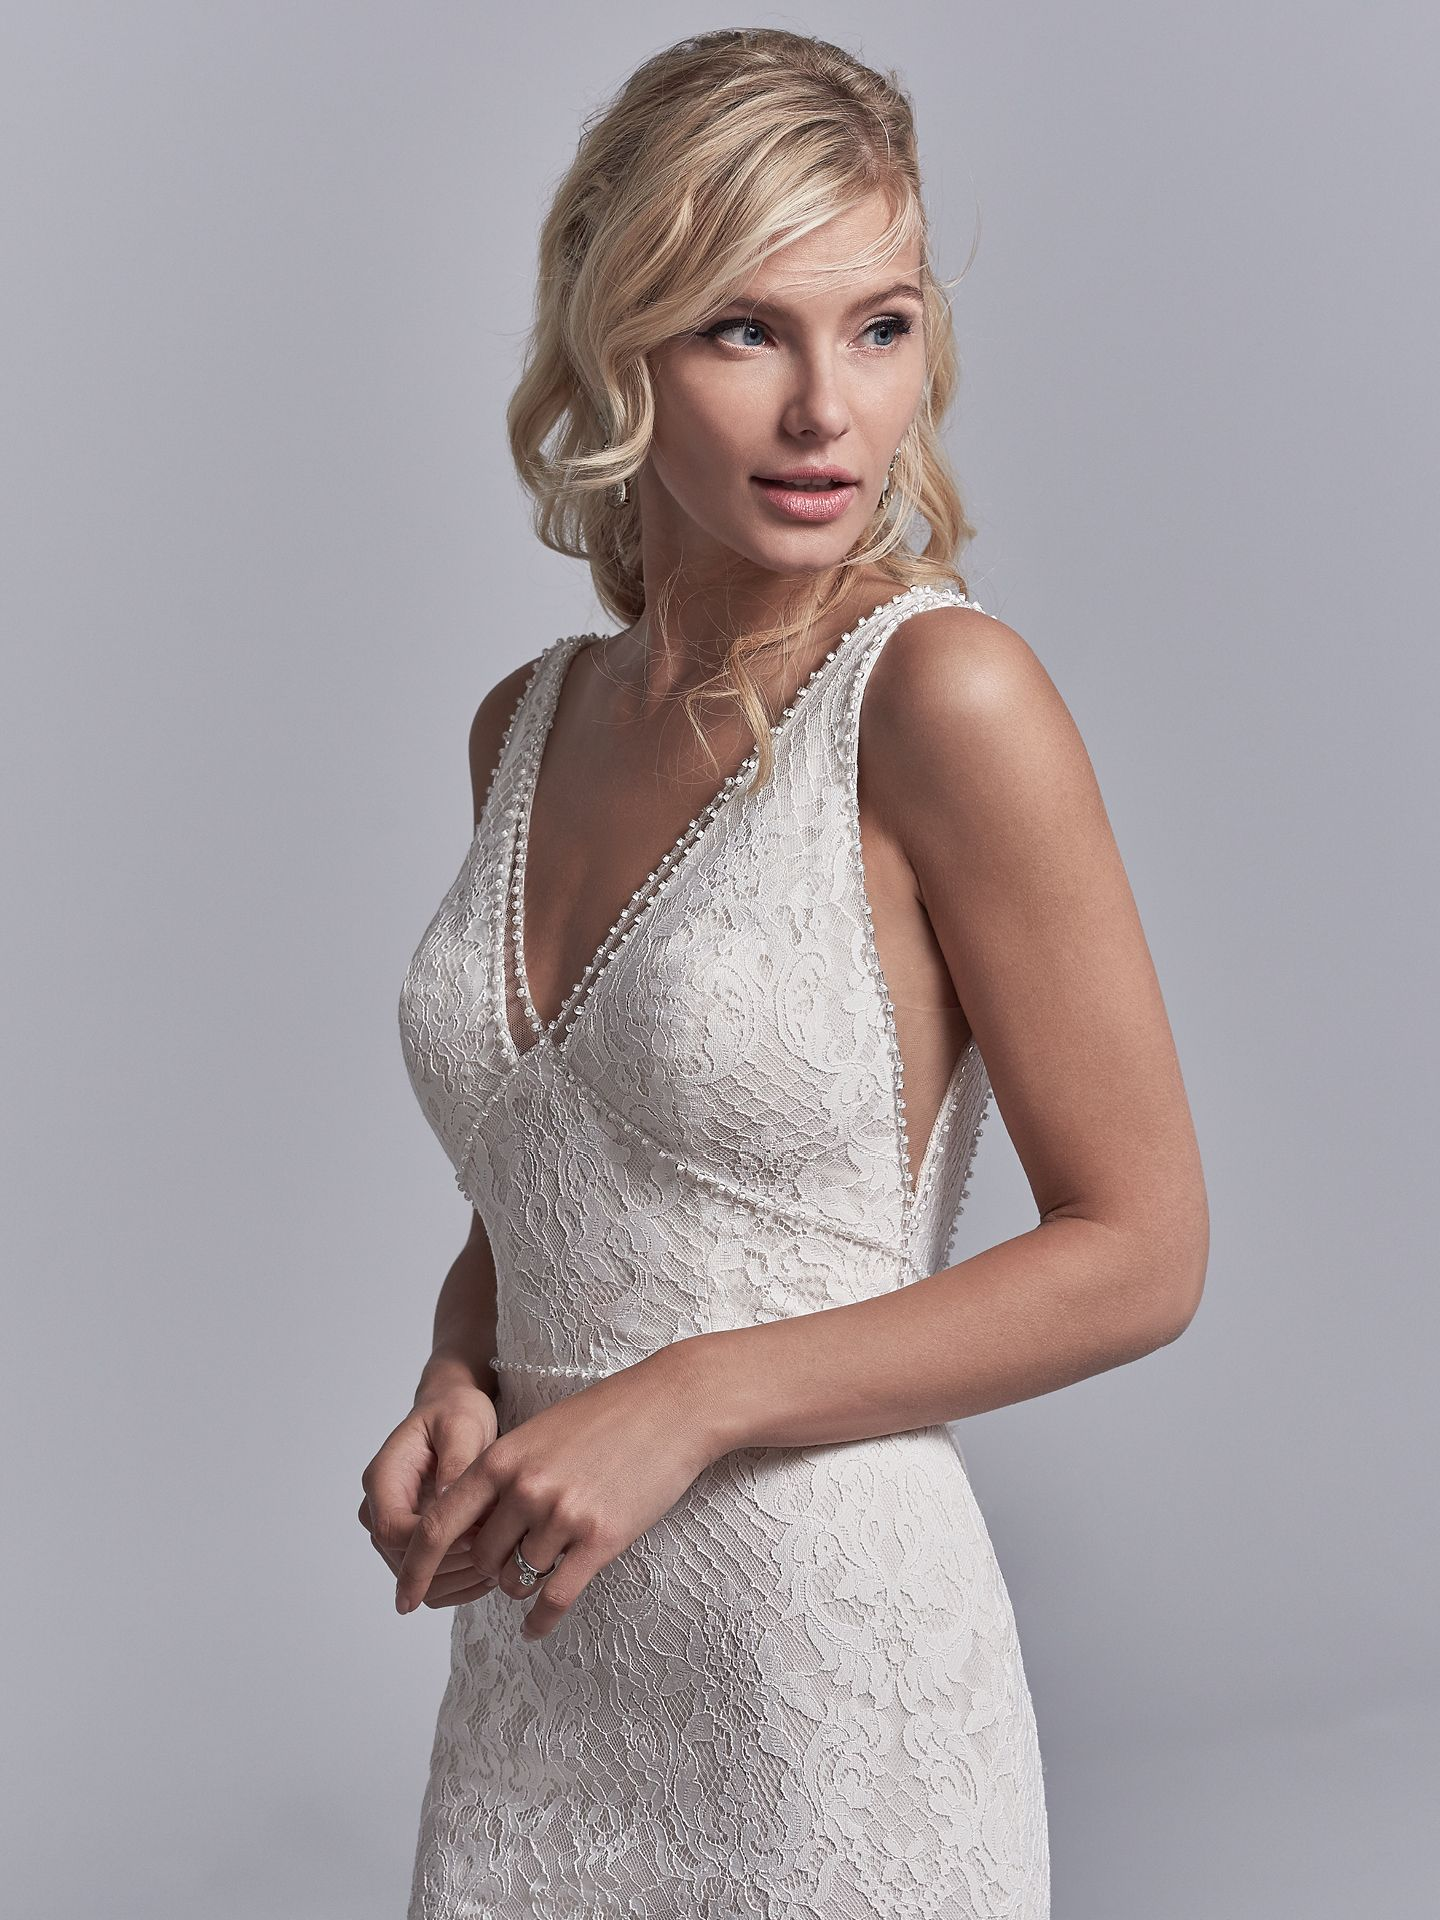 Regan wedding dress features allover lace motifs cascade over crosshatched tulle in this fit-and-flare wedding dress.  - The Latest Wedding Dress Trends for Engagement Season 2018